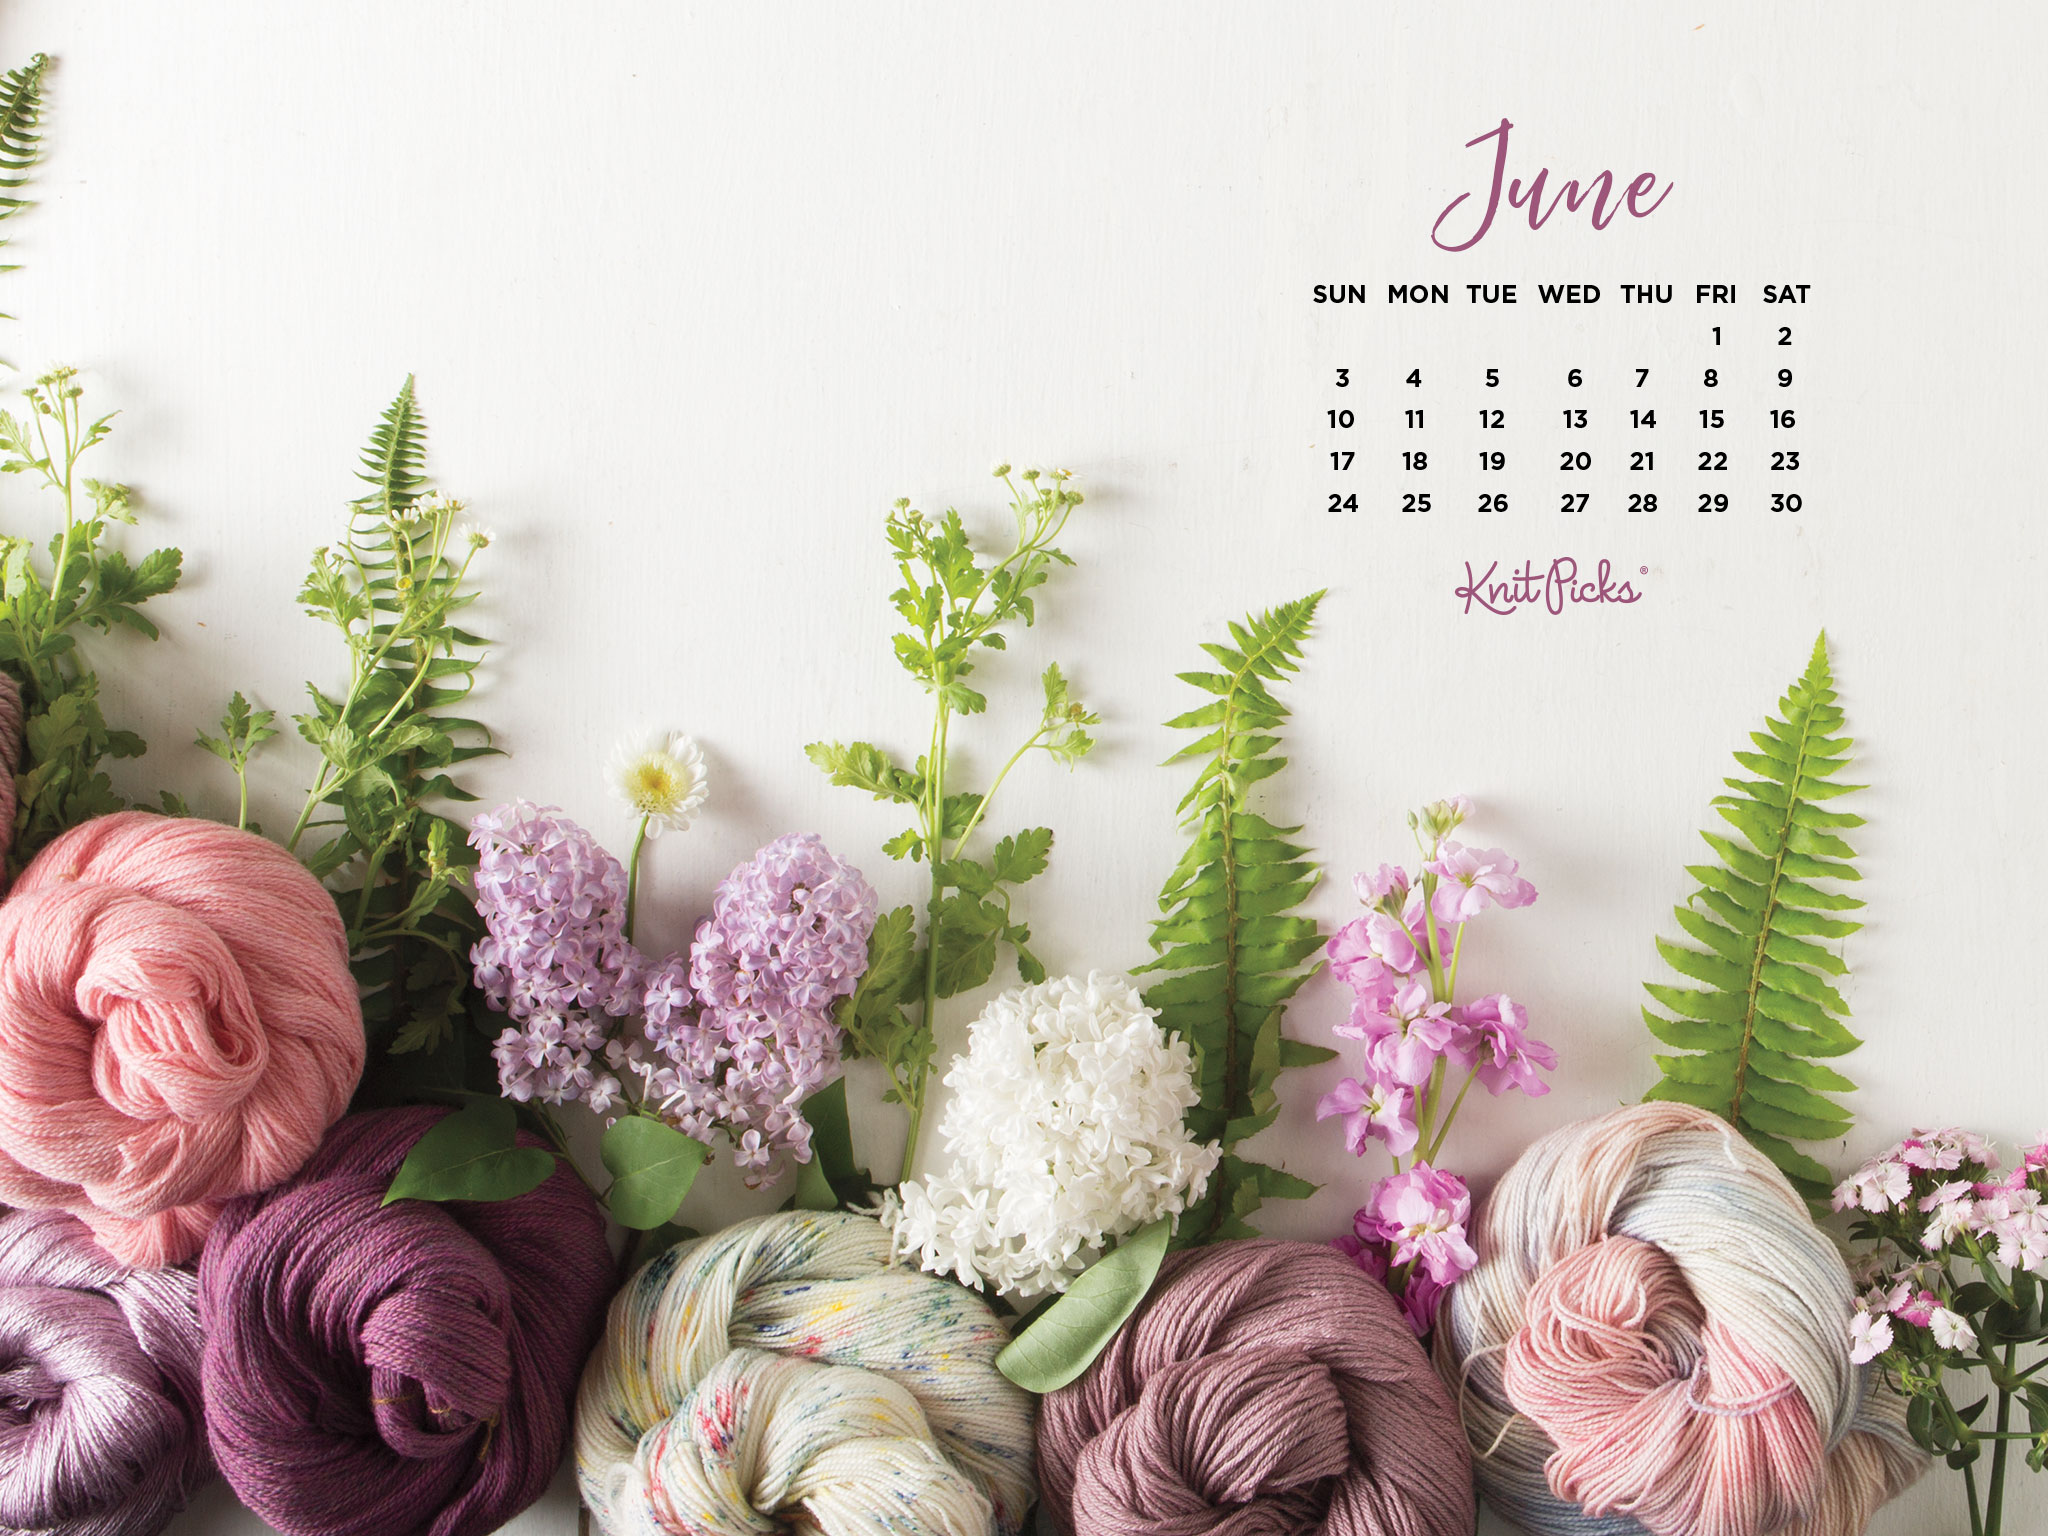 Downloadable June 2018 Calendar   KnitPicks Staff Knitting Blog 2048x1536